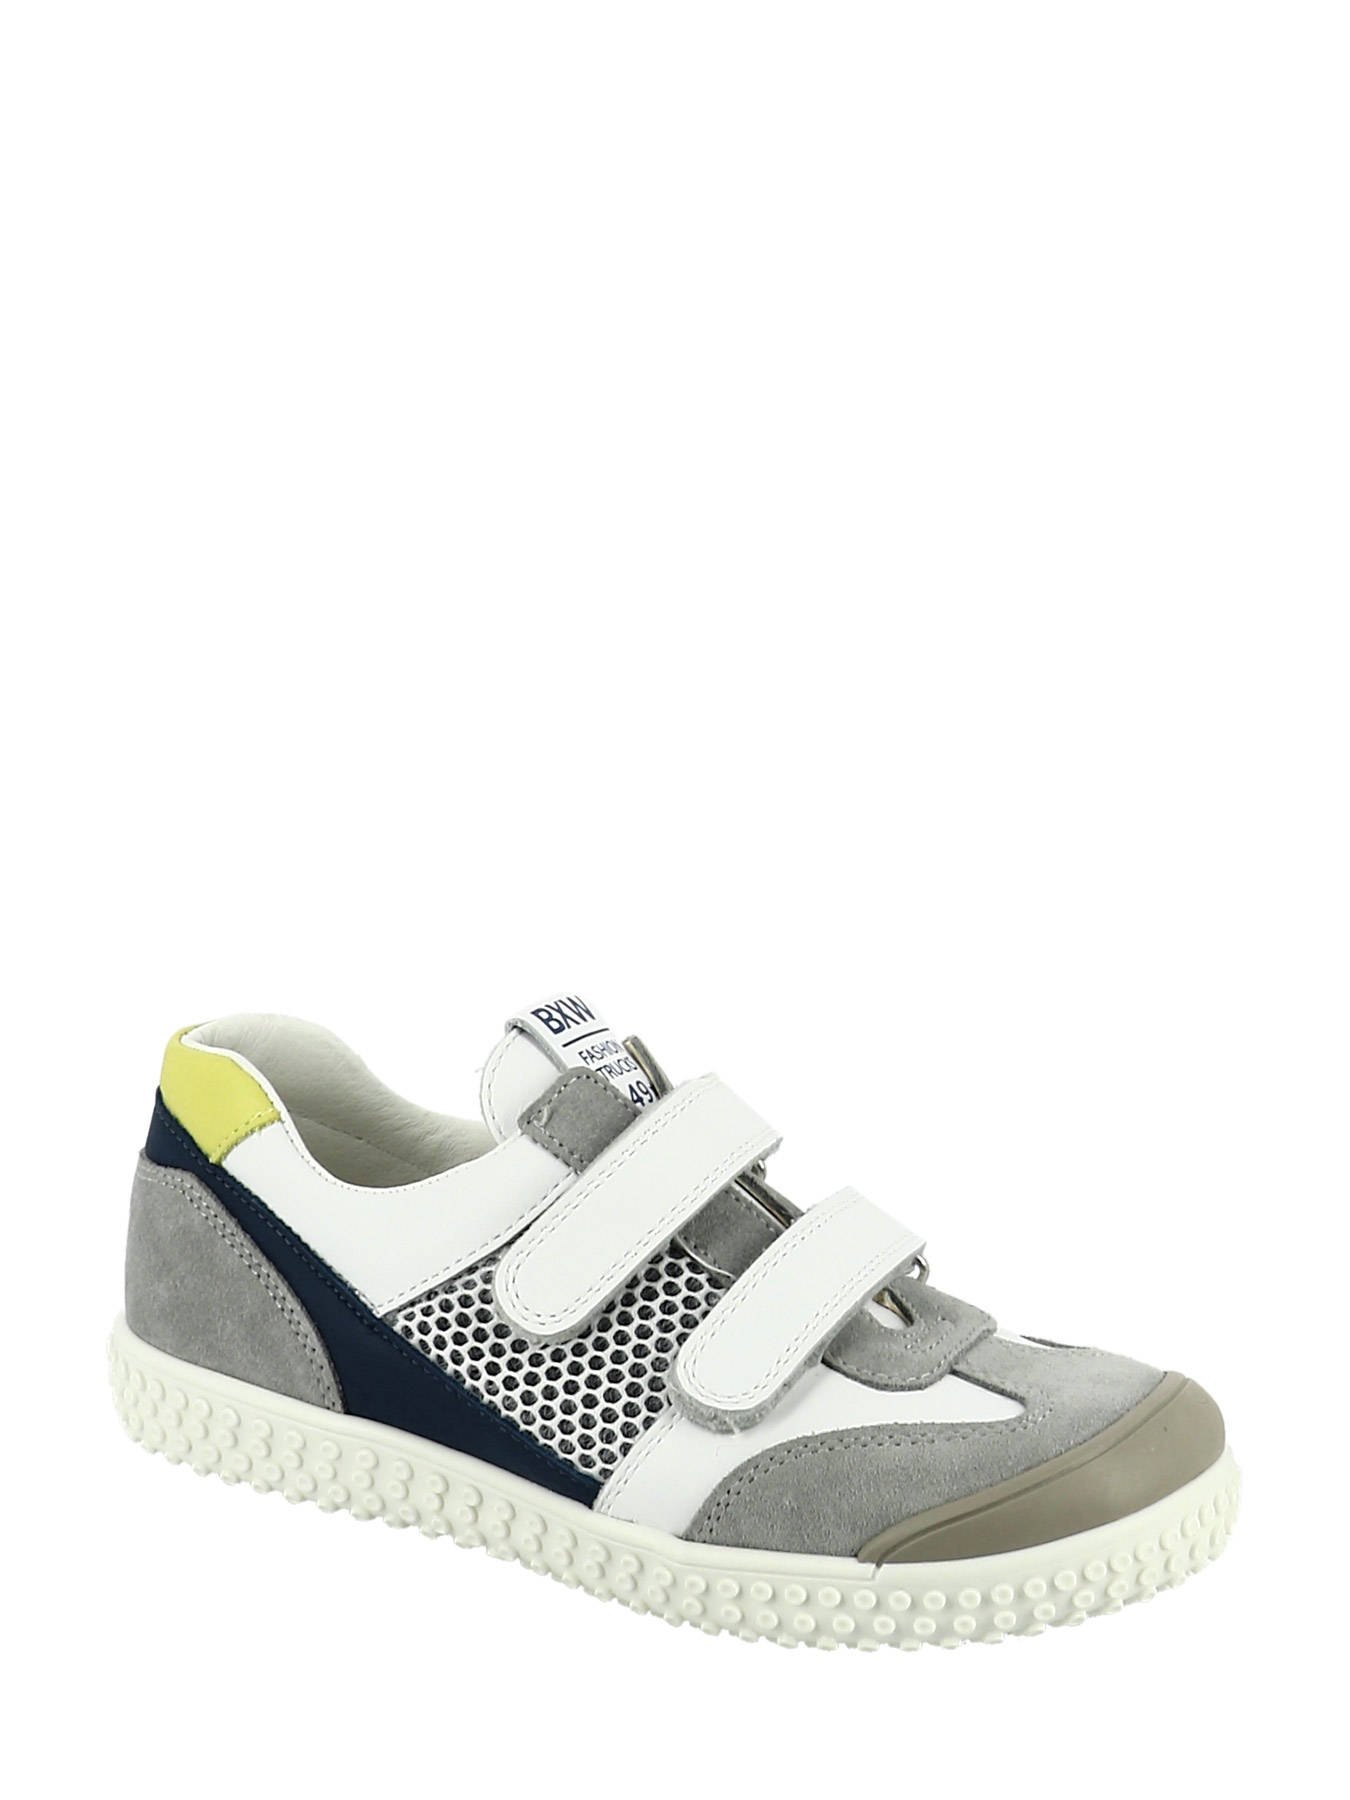 Bopy Sneakers VINCENT - free shipping